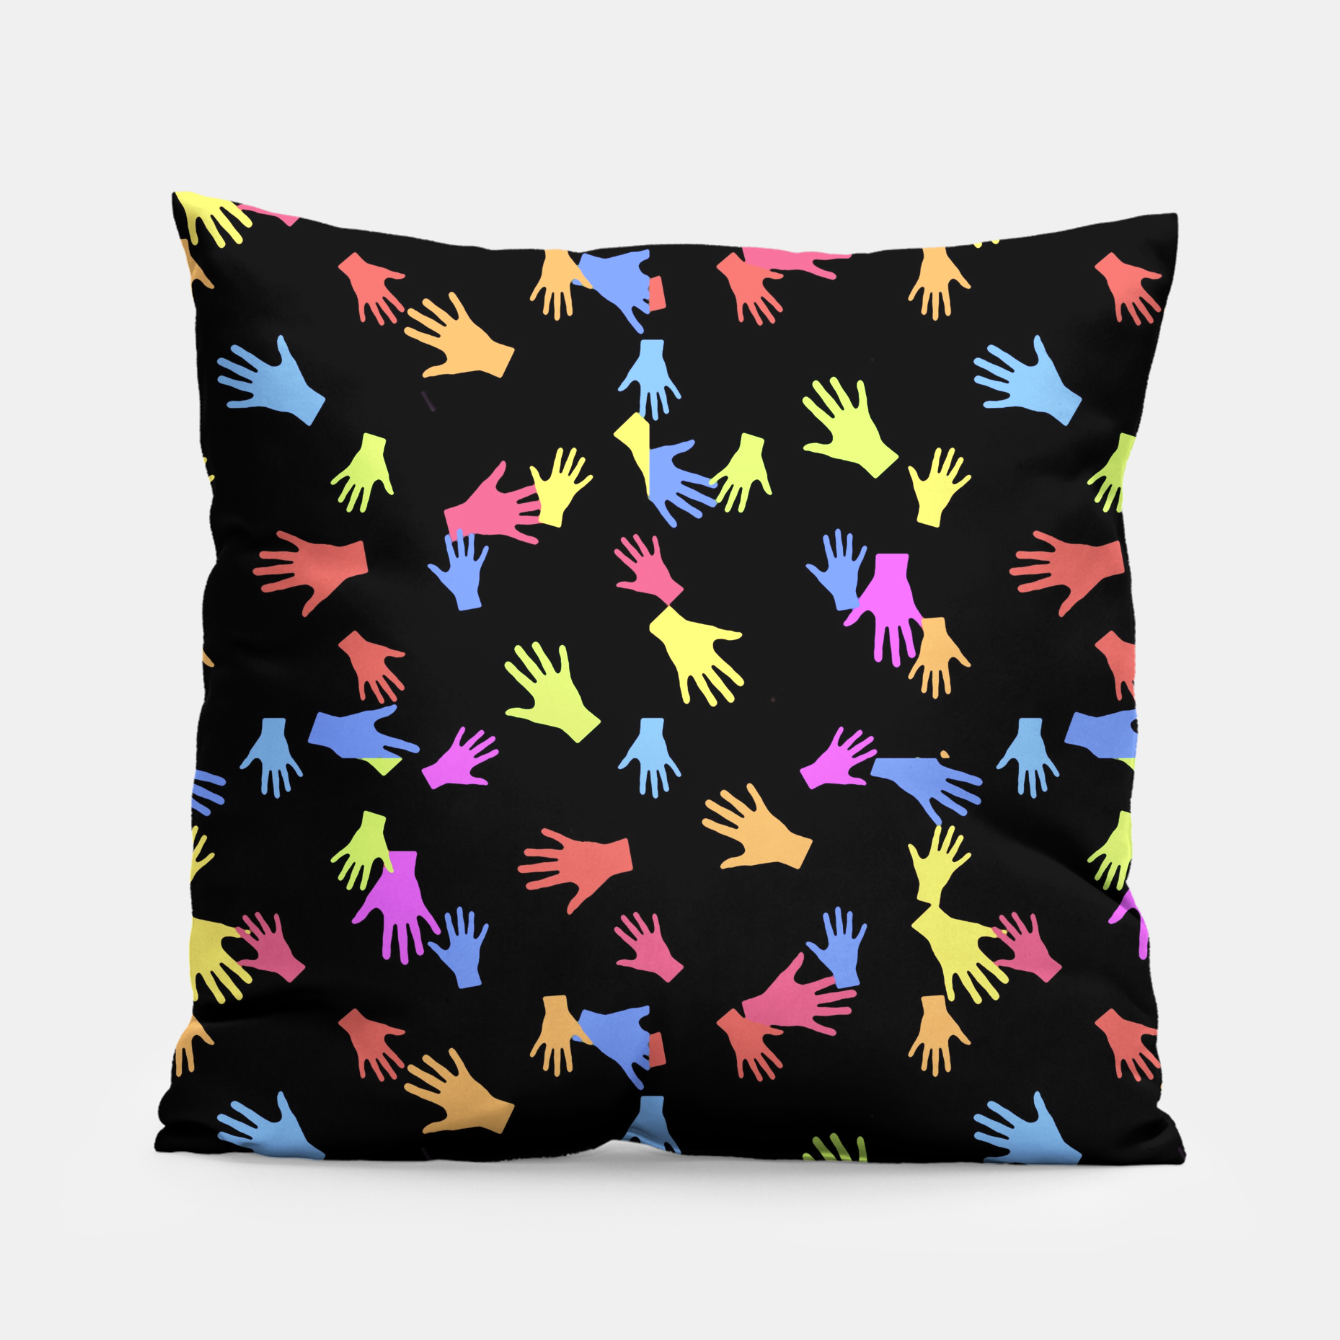 Zdjęcie Multicolored Hands Silhouette Motif Design Pillow - Live Heroes